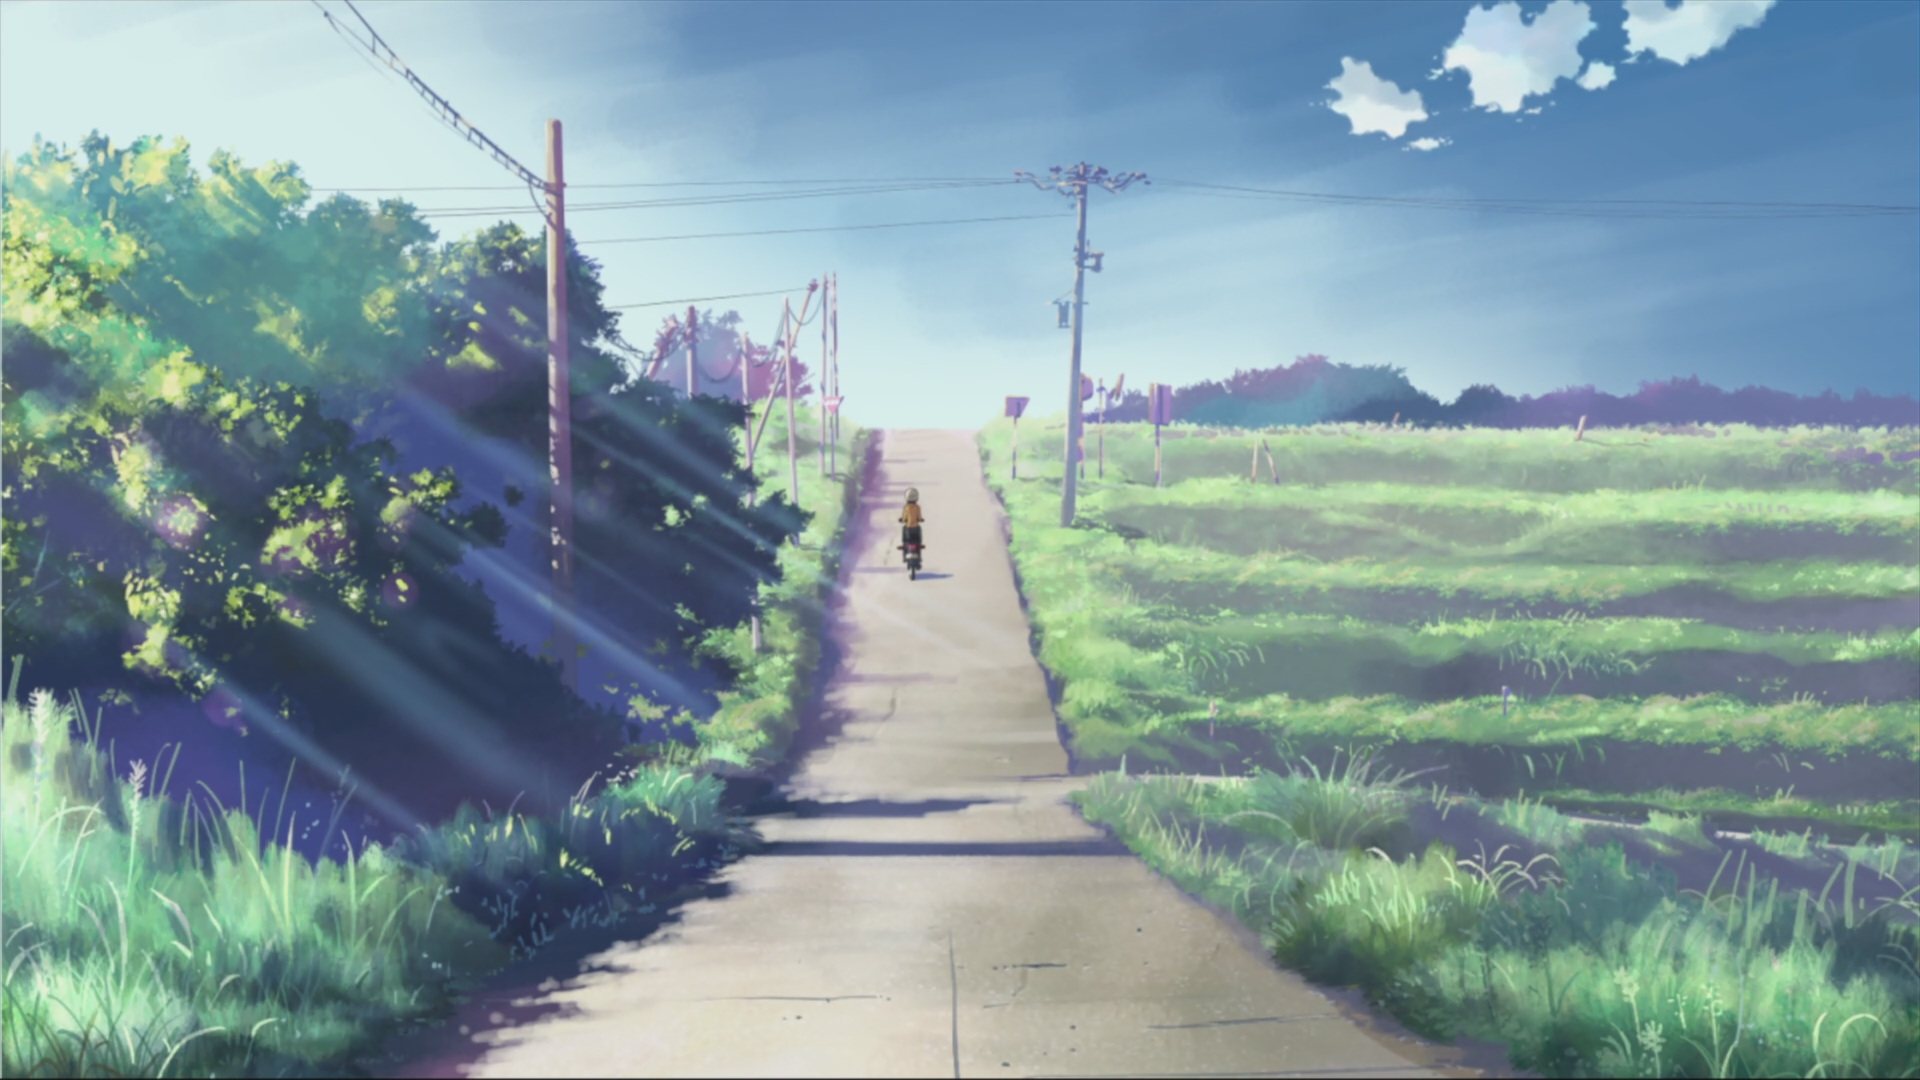 Makoto Shinkai Scenic 5 Centimeters Per Second Artwork